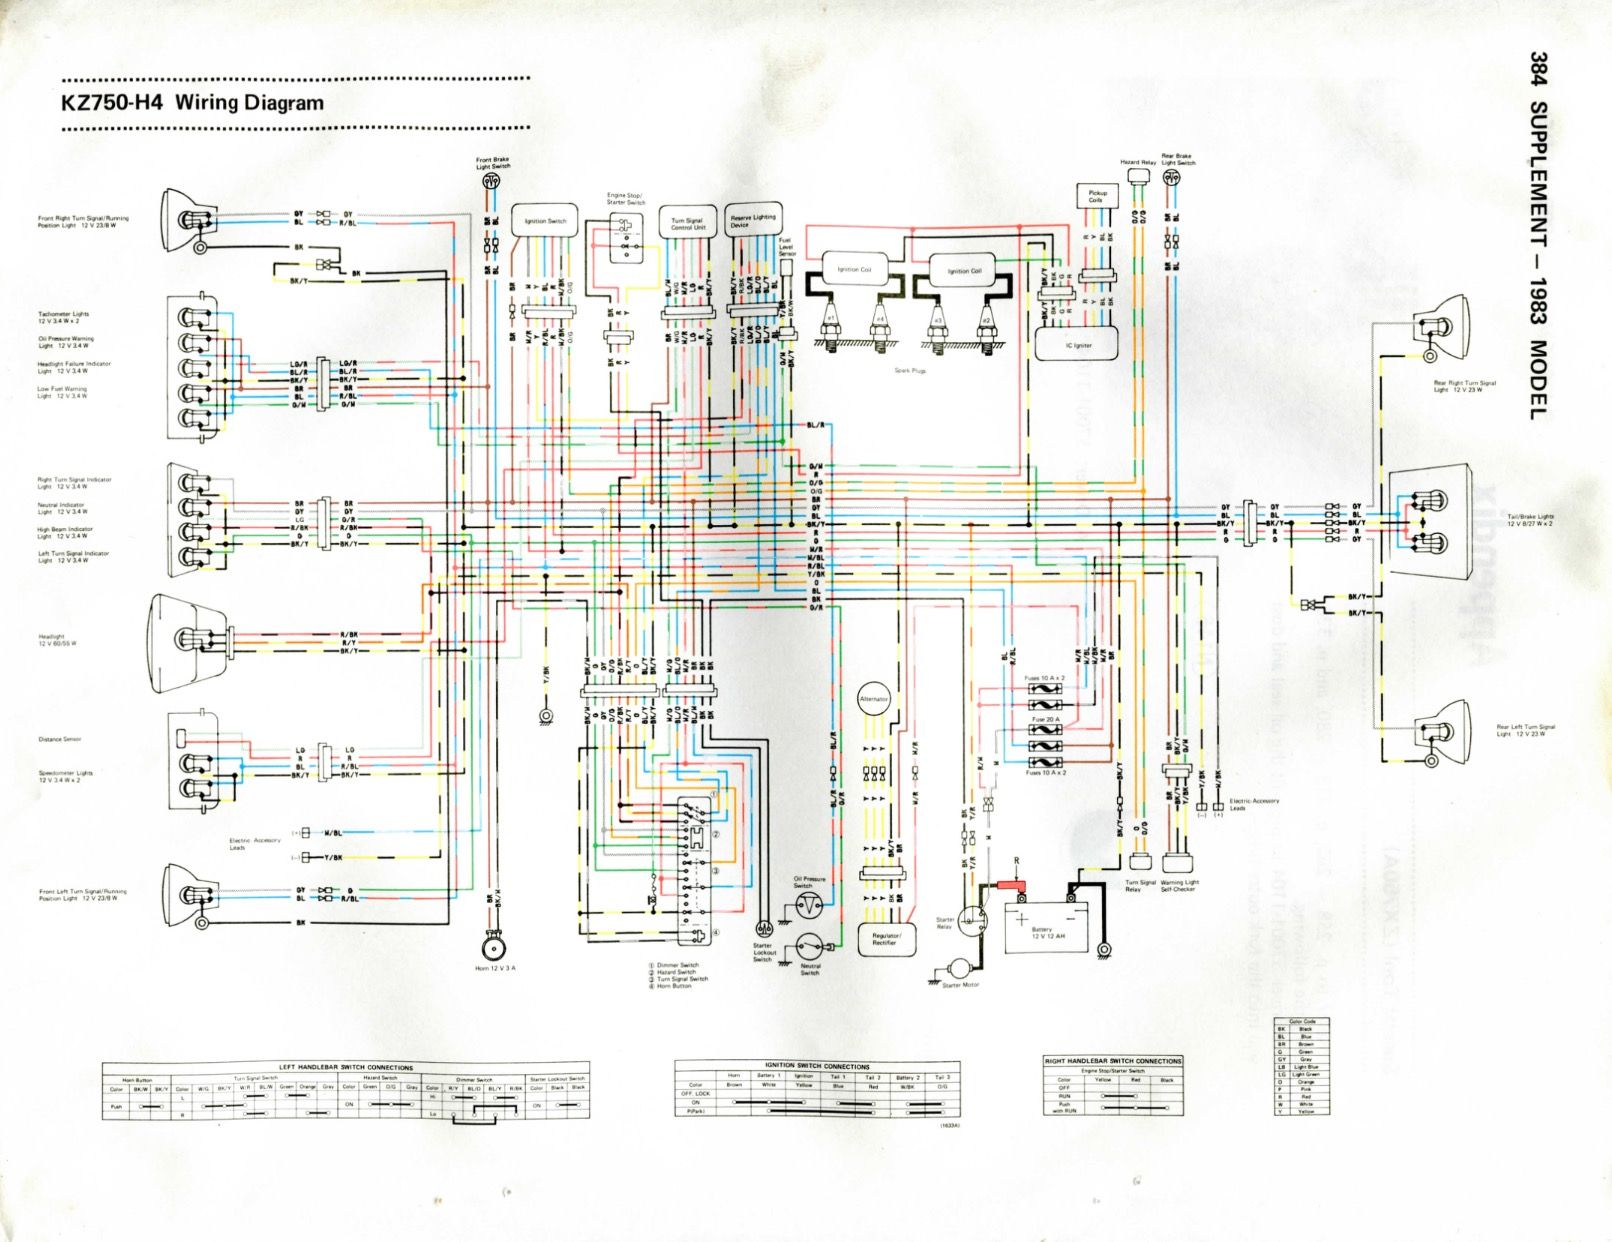 Wiring Diagram Of Kawasaki - New Wiring Diagrams on kawasaki atv carburetor diagram, kawasaki bayou model, kawasaki bayou battery wiring, kawasaki bayou 250 parts, kawasaki bayou 250 carburetor, kawasaki bayou repair manual, kawasaki bayou 250 manual, kawasaki bayou 4 wheeler parts, kawasaki electrical diagrams, kawasaki bayou 250 lift kit, kawasaki bayou diagram, kawasaki bayou 250 carb adjustment, kawasaki wiring diagrams, massey ferguson wiring schematic, peterbilt 379 wiring schematic, yamaha big bear 350 wiring schematic, mercruiser wiring schematic, 1982 honda xr500r wiring schematic, kawasaki parts diagram, kawasaki bayou atv parts,